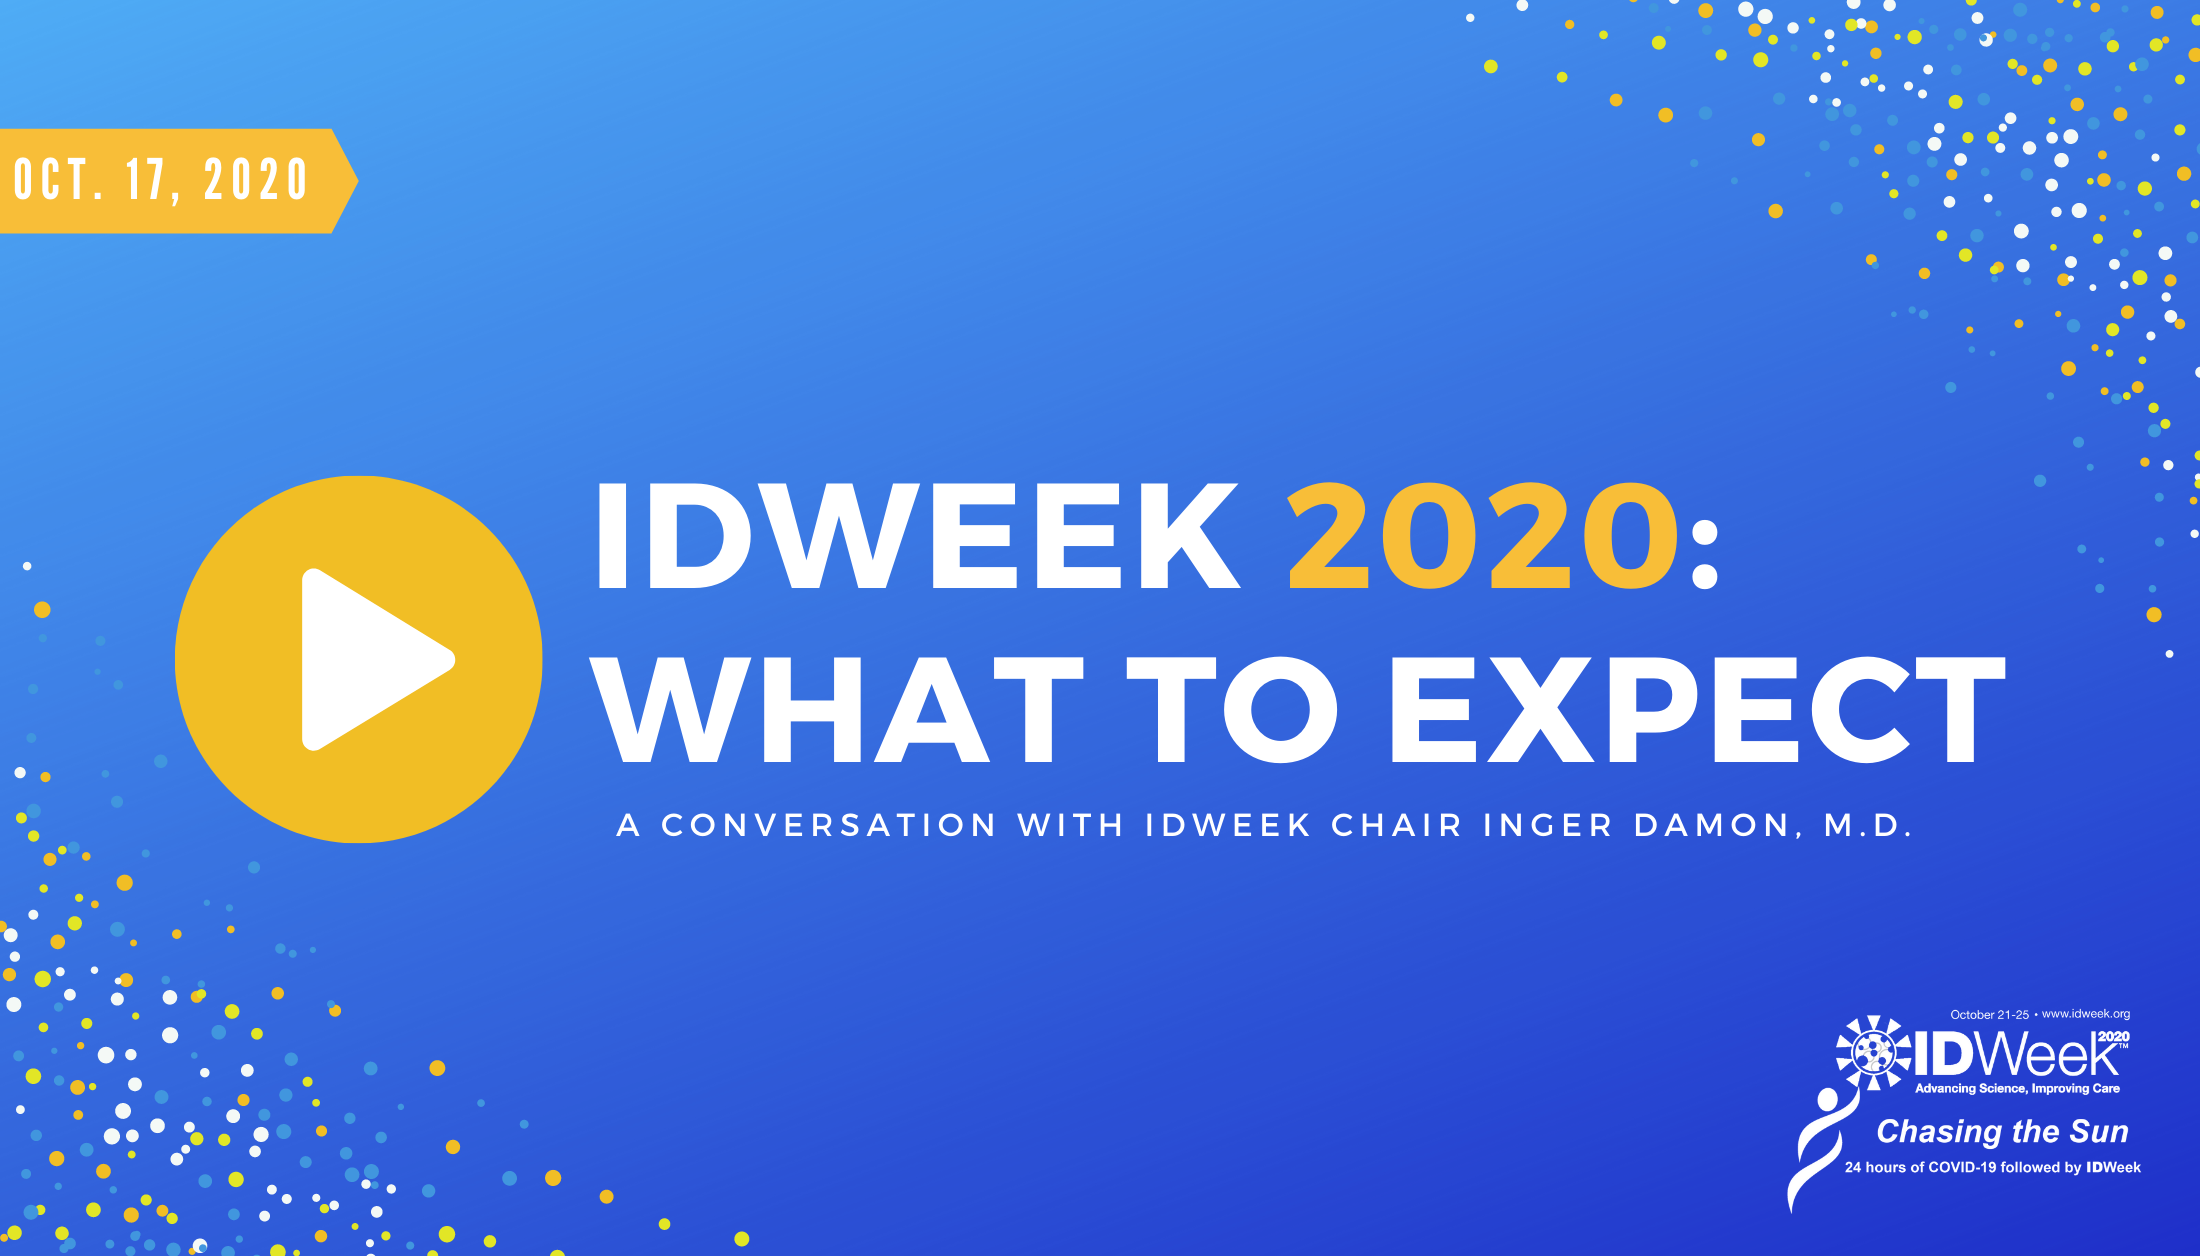 IDWeek 2020 What To Expect.png